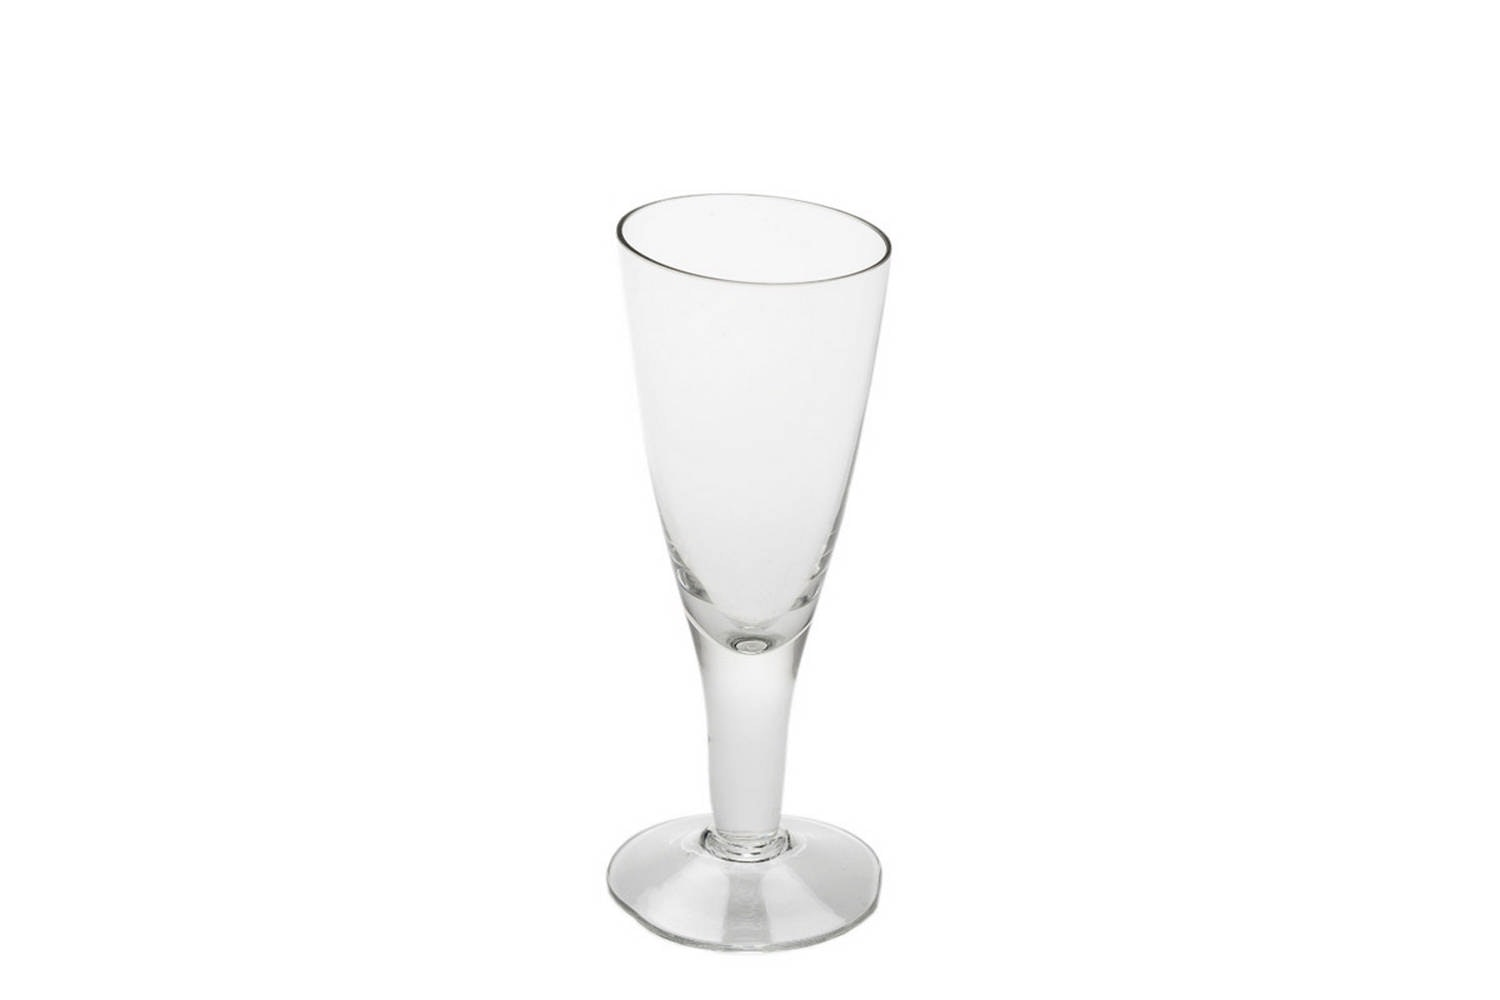 Tipsy Champagne Glass by Tse & Tse